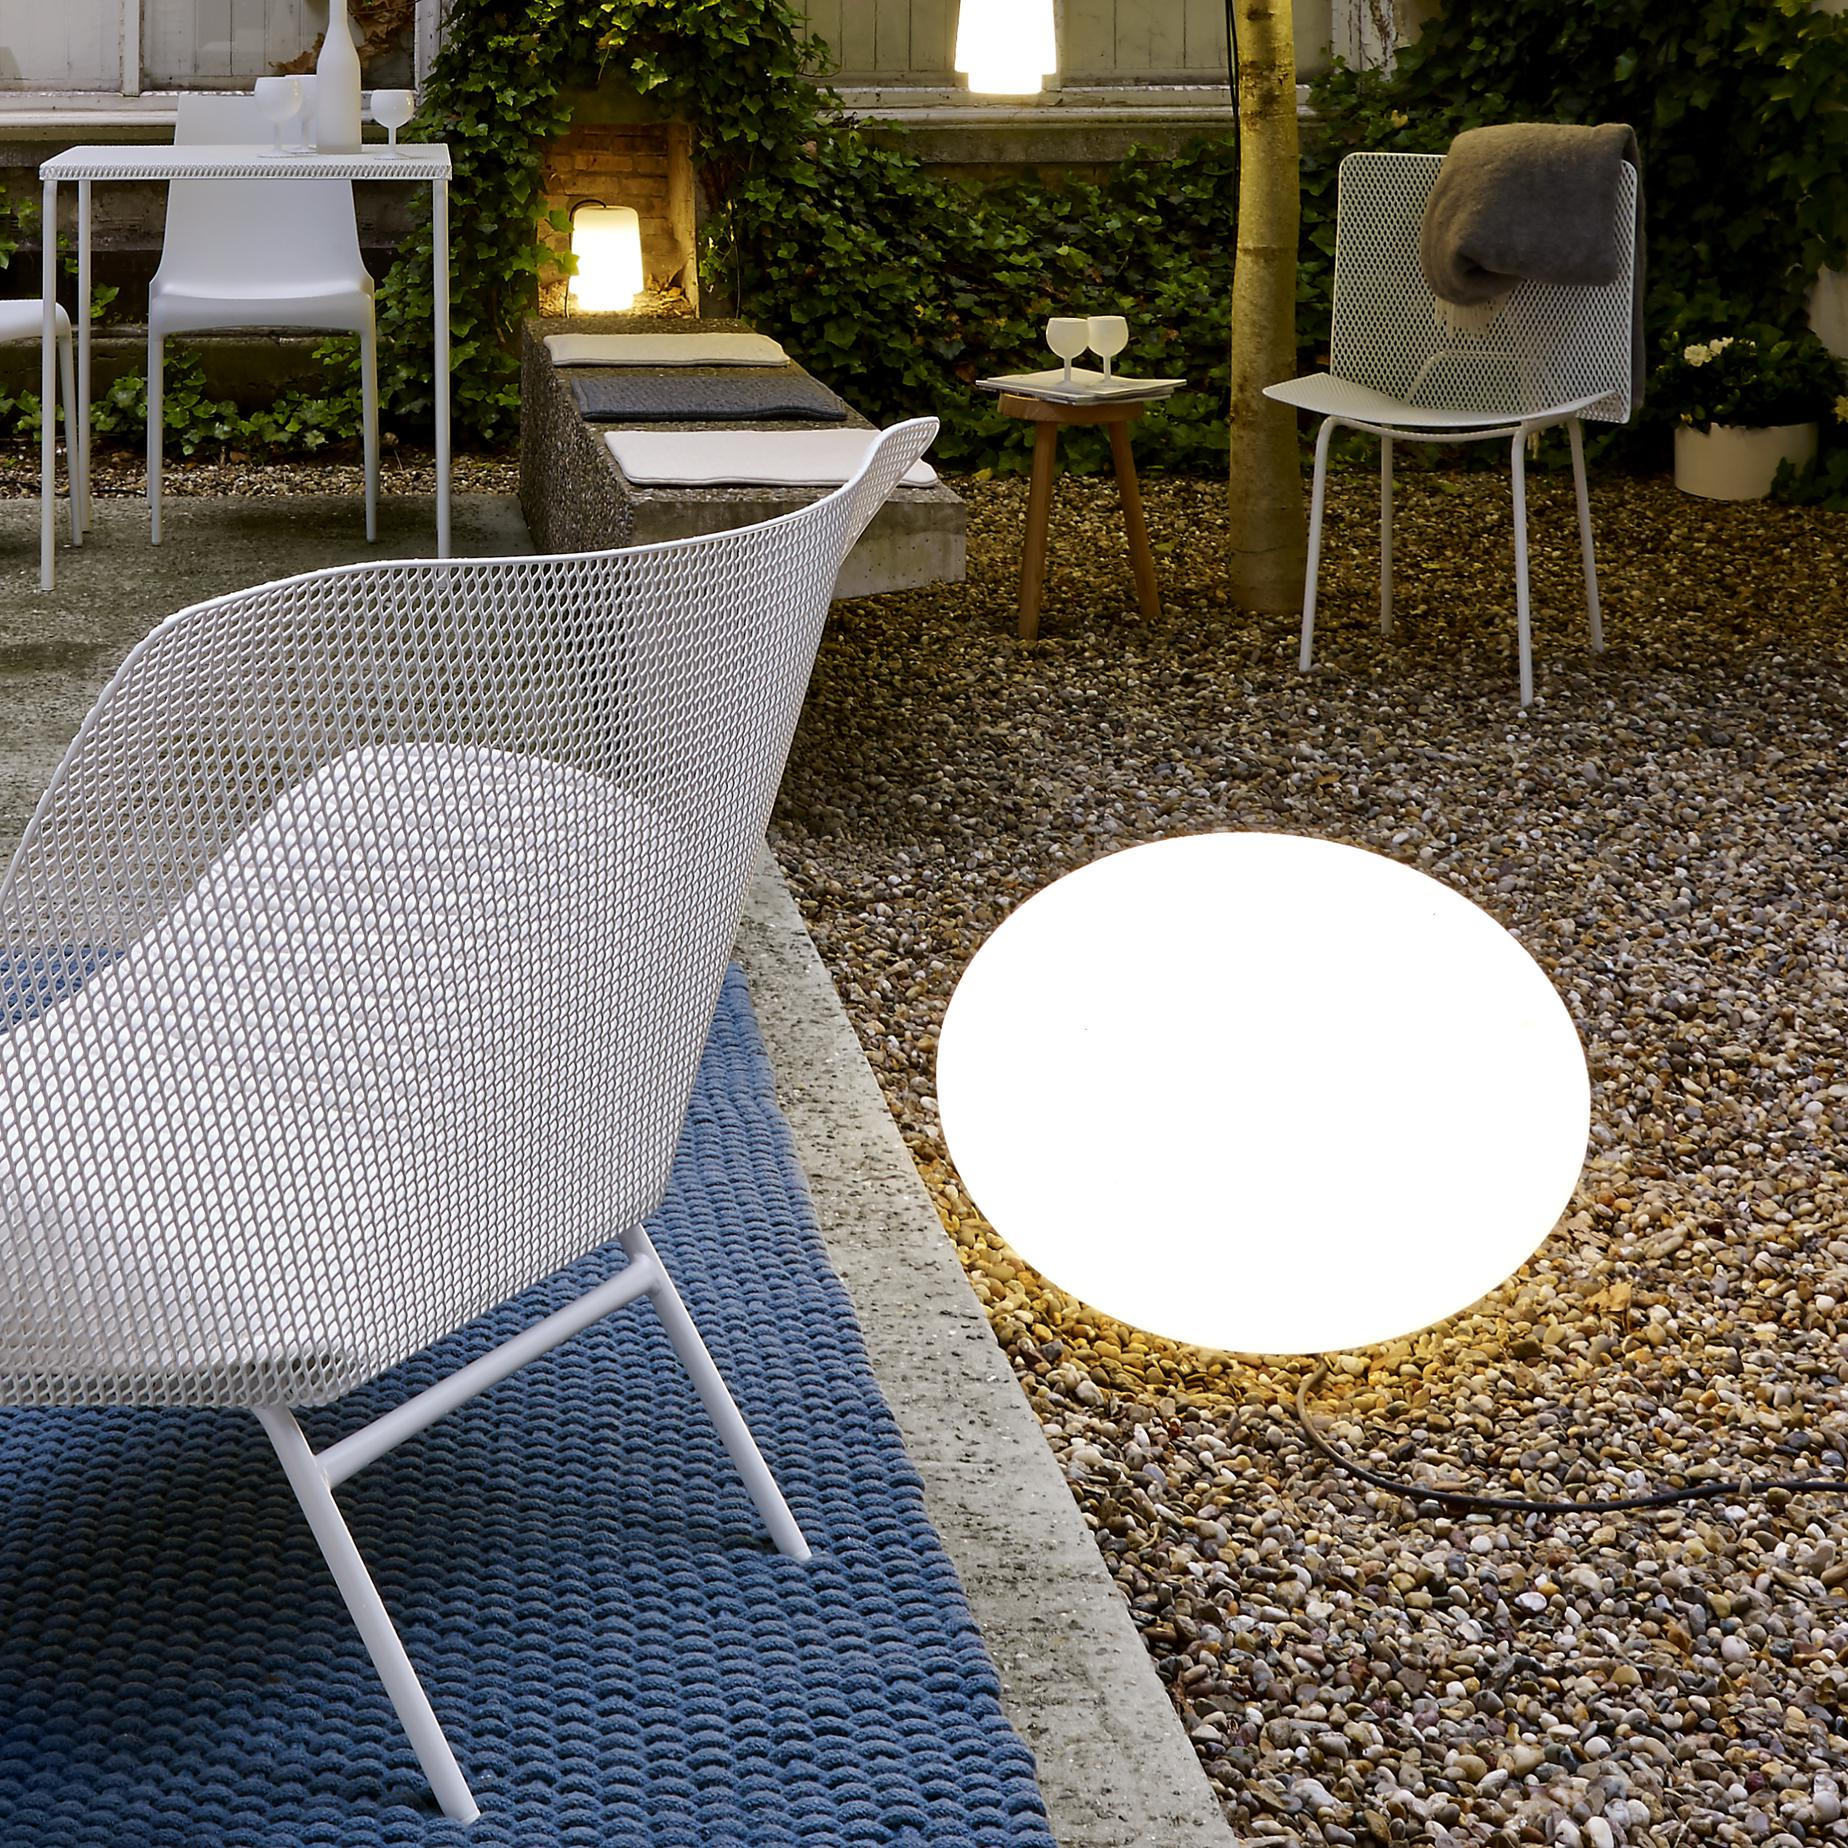 Globe outdoor lighting from designer ligne roset official site globe outdoor table lamp indoor outdoor cul listed aloadofball Choice Image